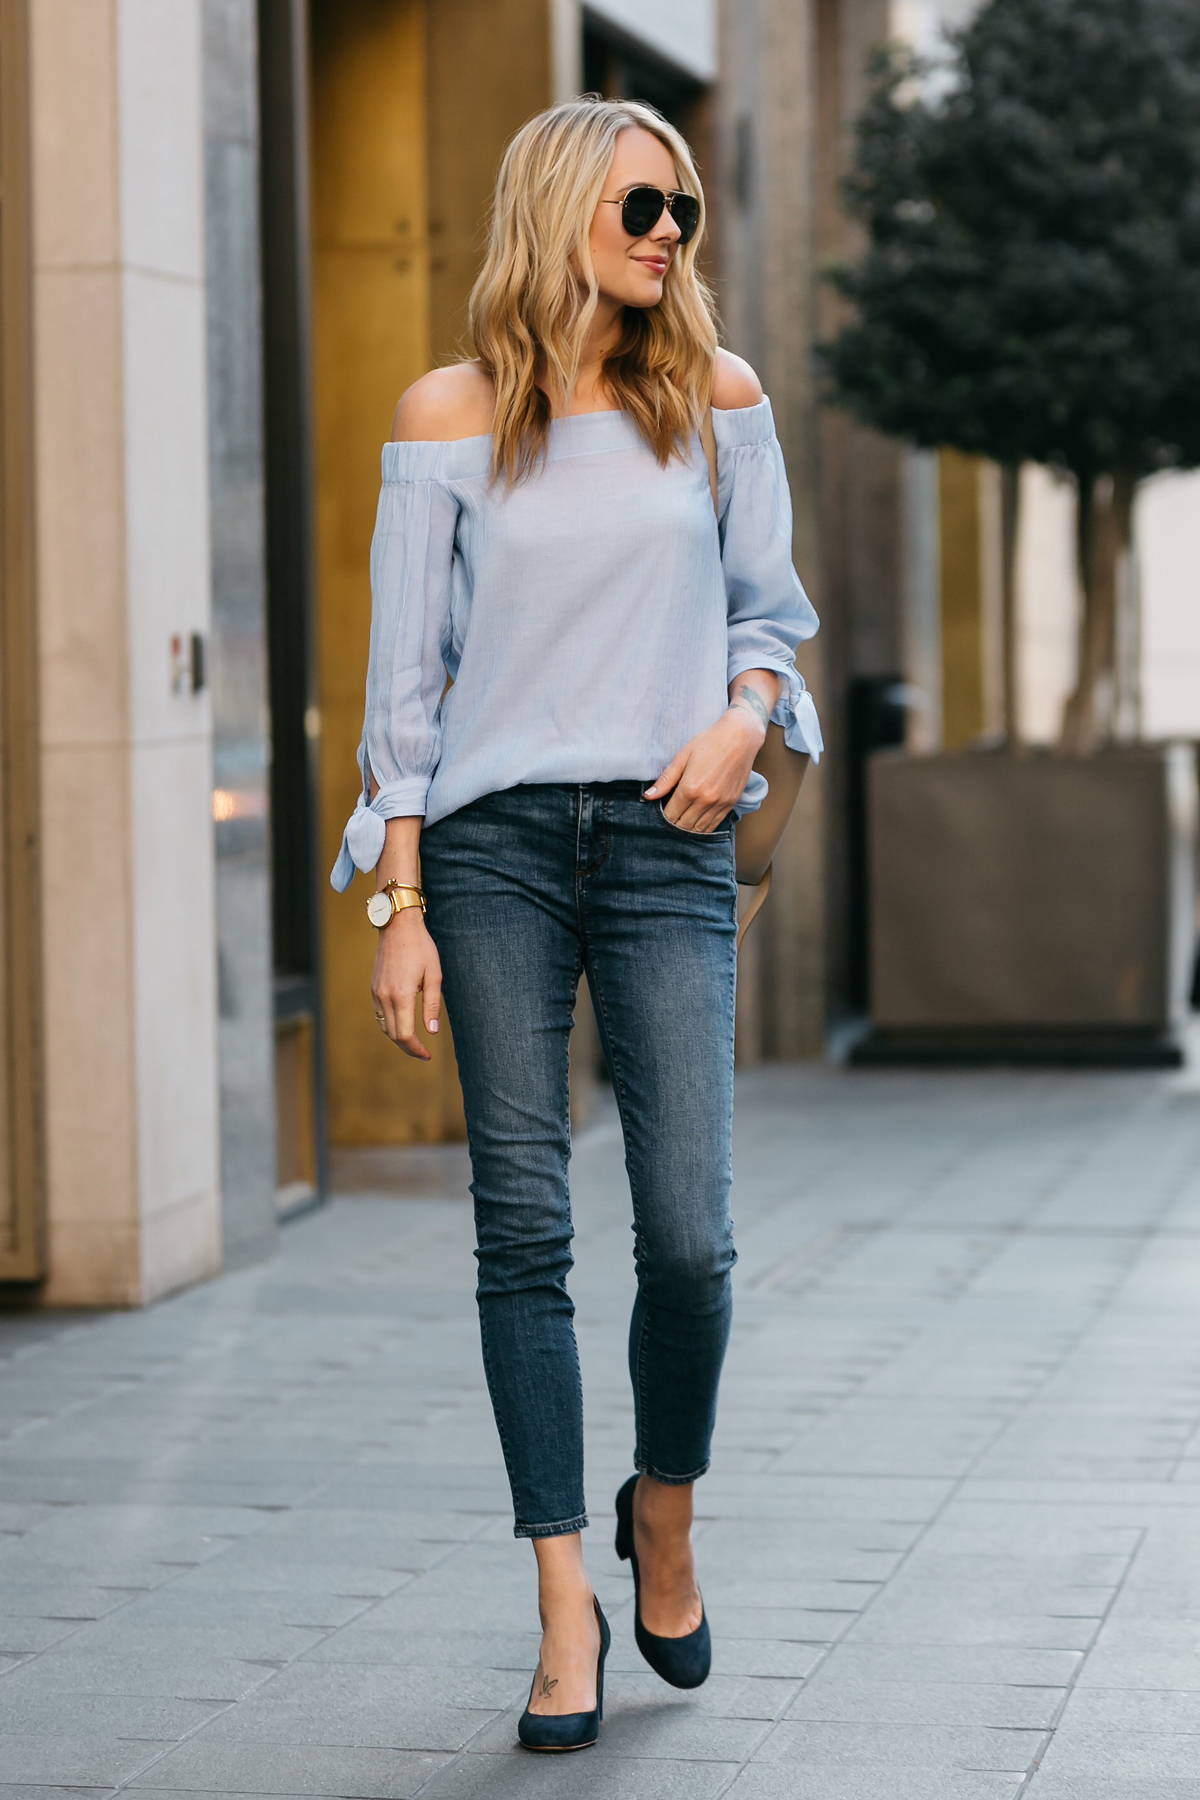 Fashion Jackson, Dallas Blogger, Fashion Blogger, Street Style, Ann Taylor Blue Tie Off-the-shoulder Top, Denim Skinny Jeans, Navy Suede Block Heel Pumps, Celine Belt Bag, Celine Aviator Sunglasses